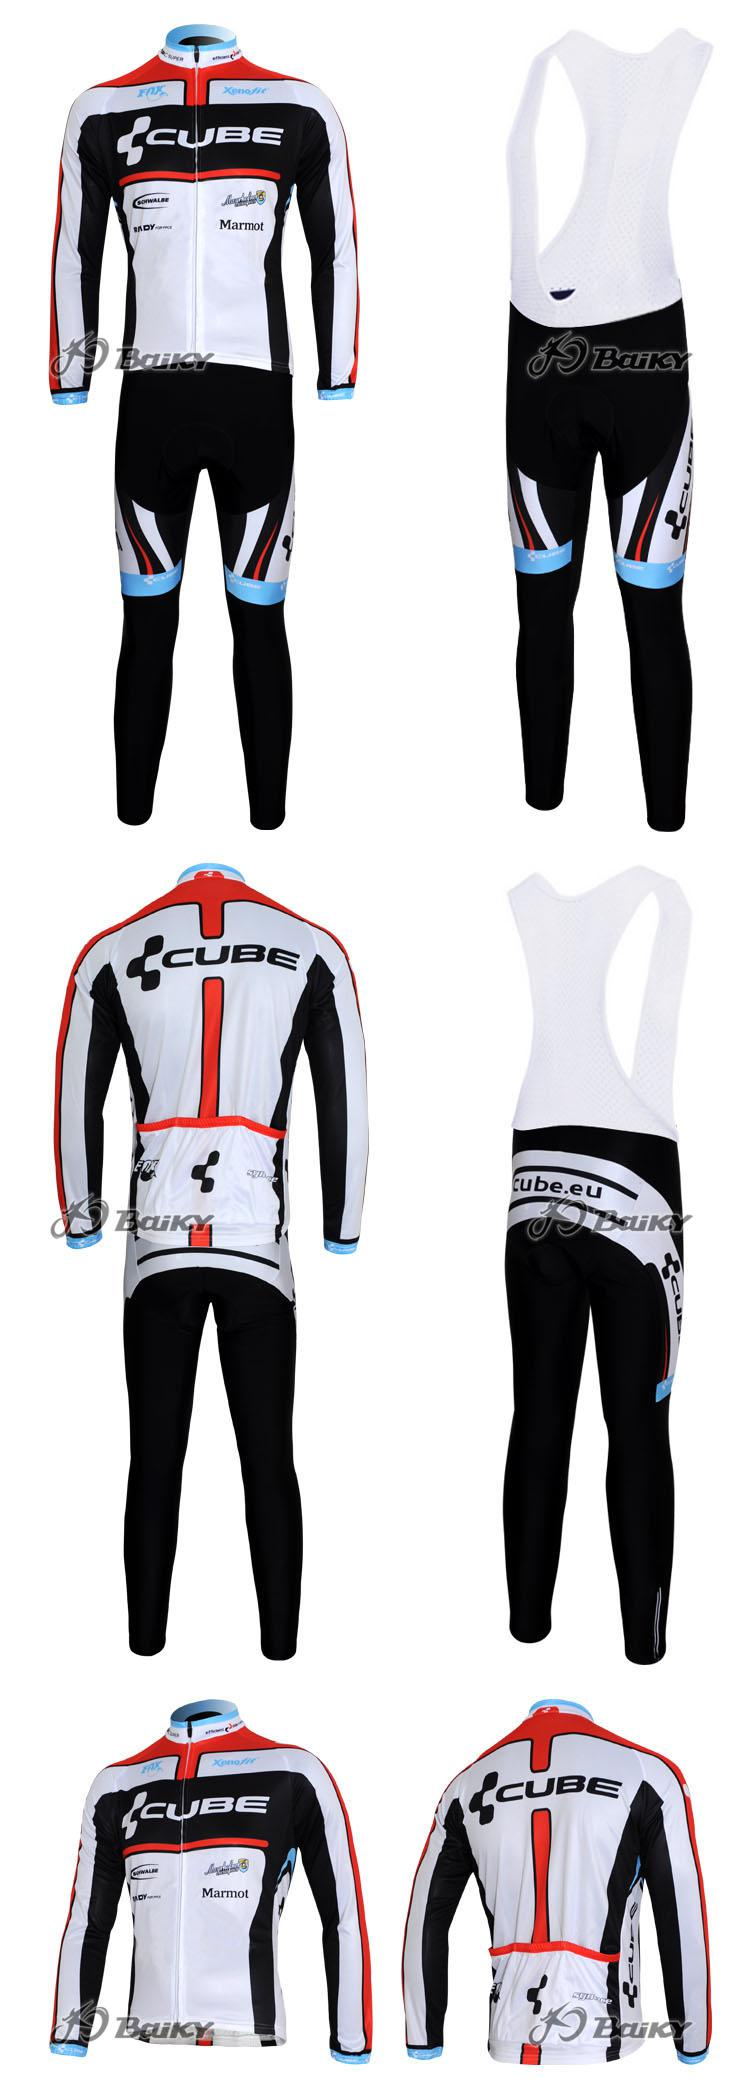 MEN'S SPRING CYCLING LONG JERSEY + BIB PANTS 2012 CUBE BLACK-PICK SIZE:XS-4XL C067